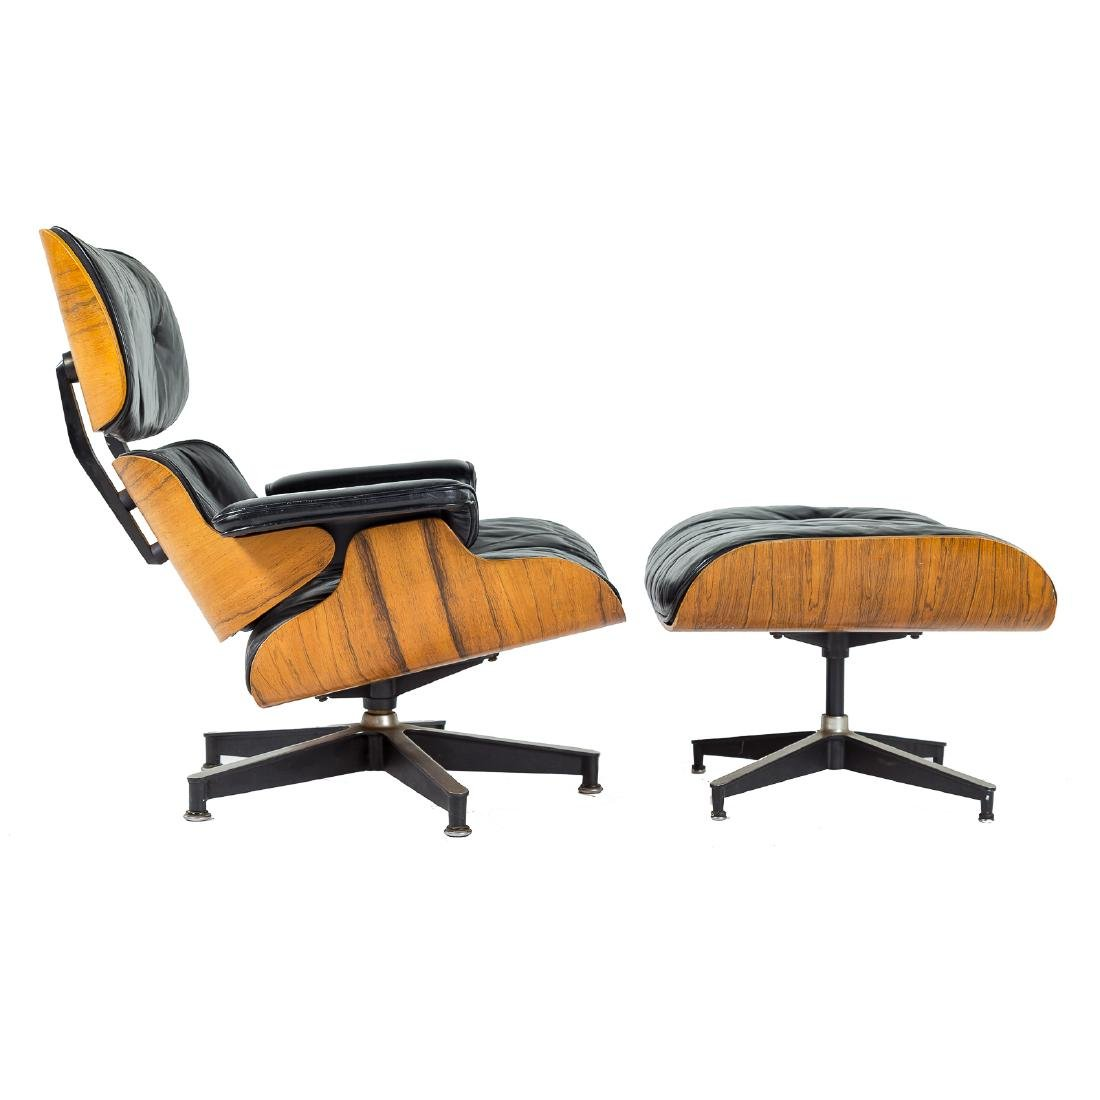 Eames for Herman Miller Lounge Chair and Ottoman - 2